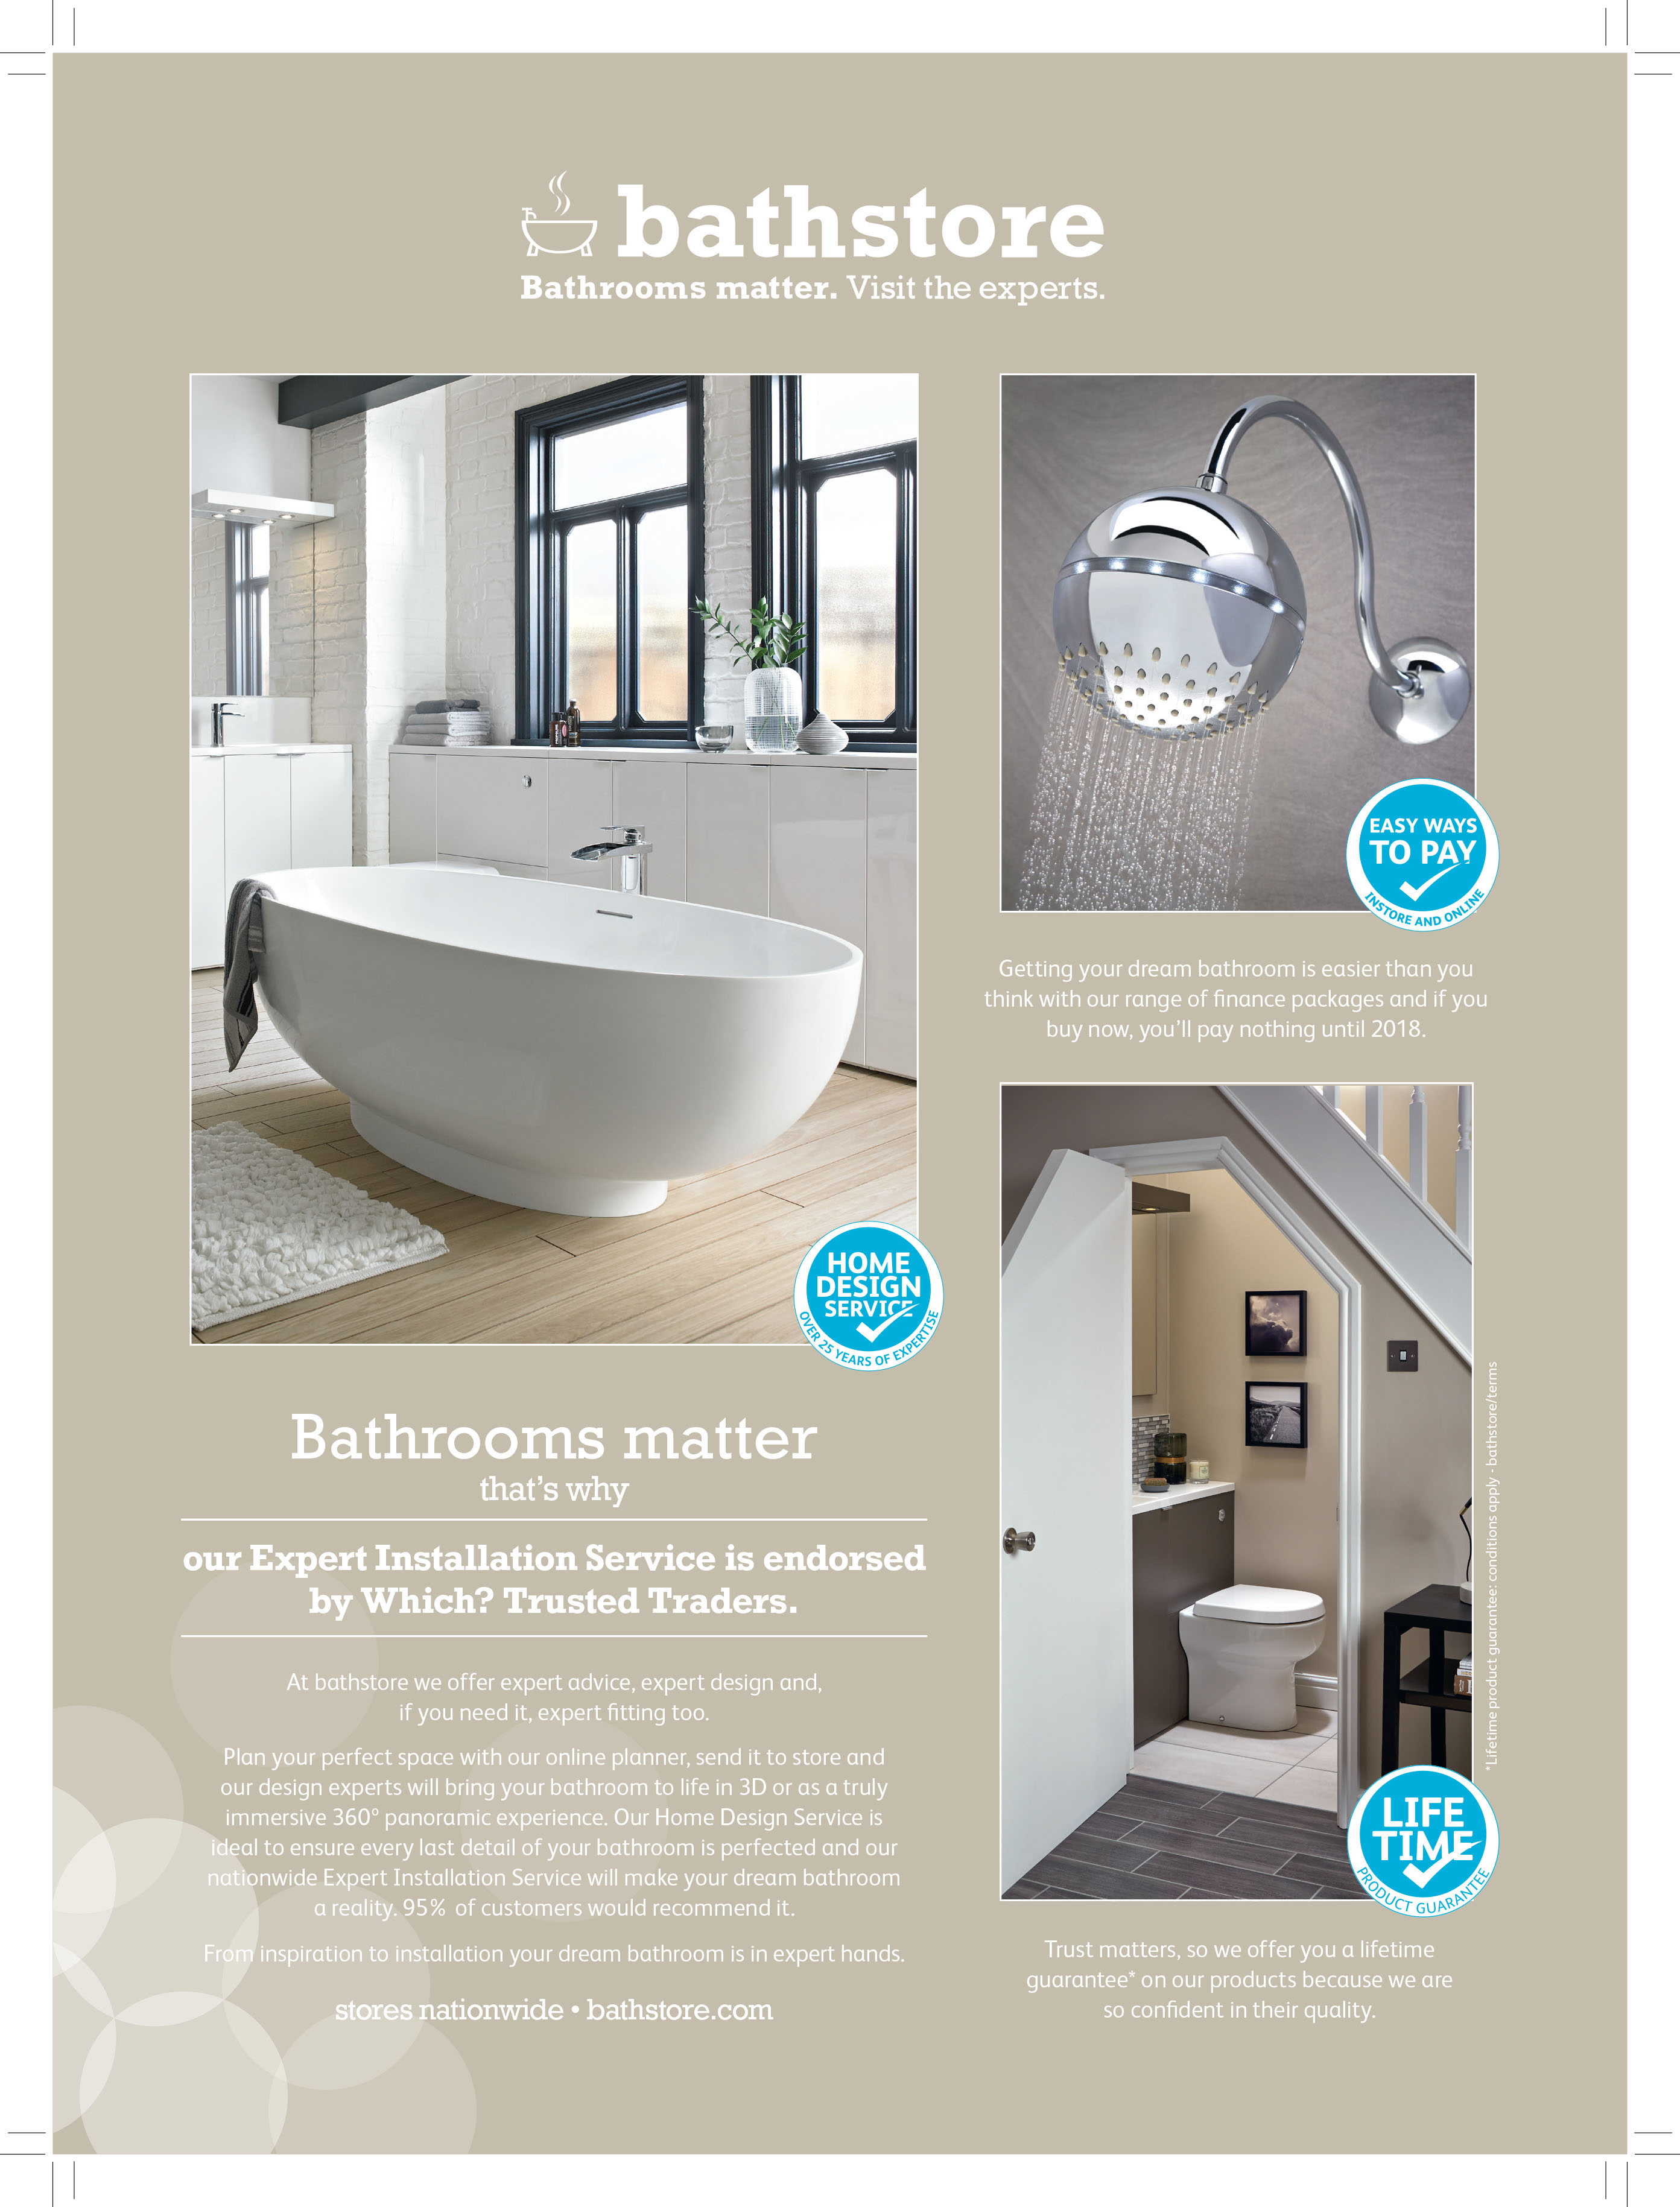 home design experts emily sayers content and web and poster designs for new mytubhub launch - In Home Design Services